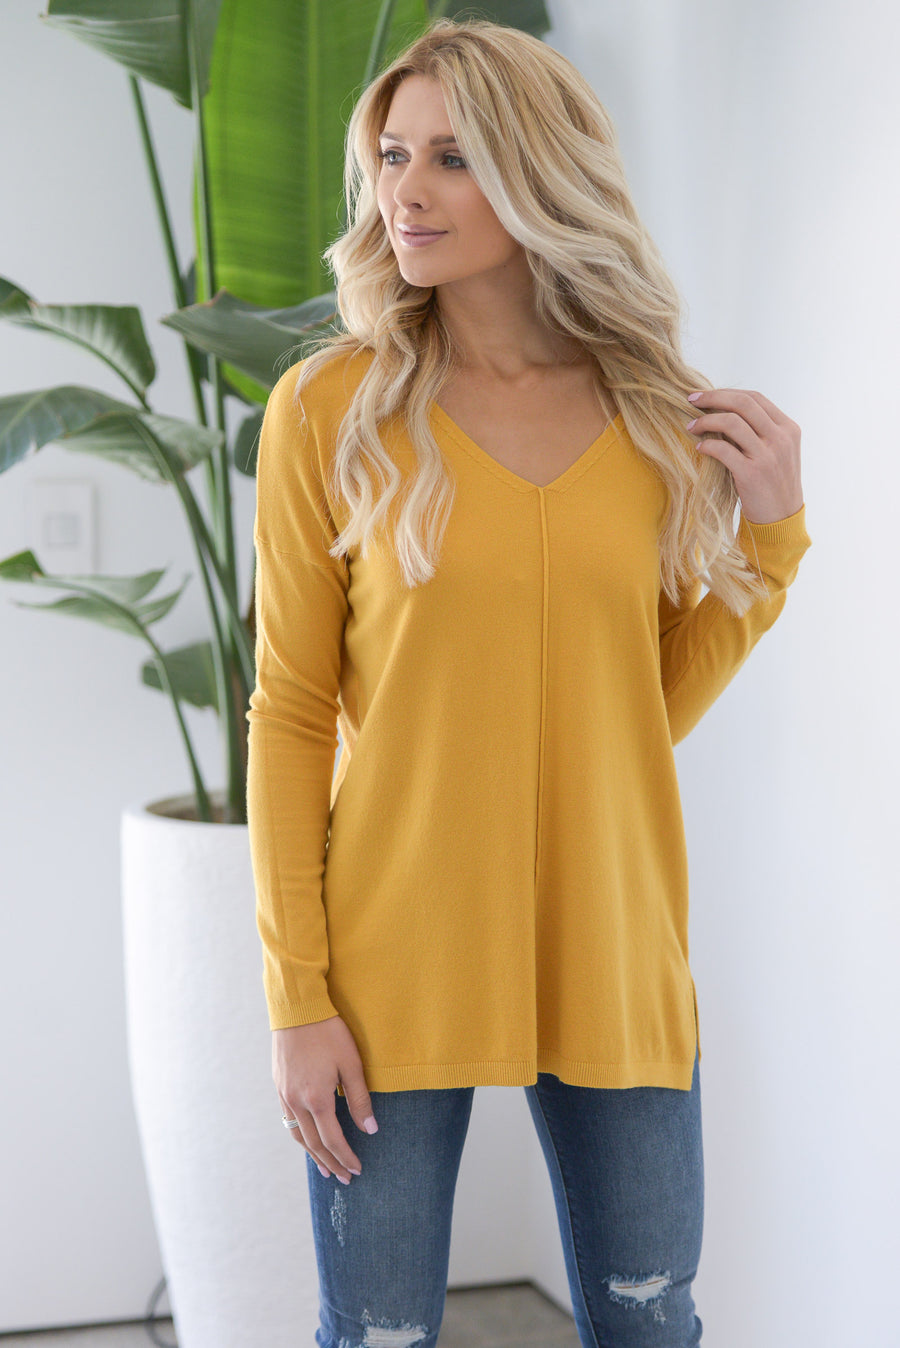 Cuddles & Cocoa Sweater - Mustard women's v-neck stretchy top with center seam and side slits closet candy boutique 1